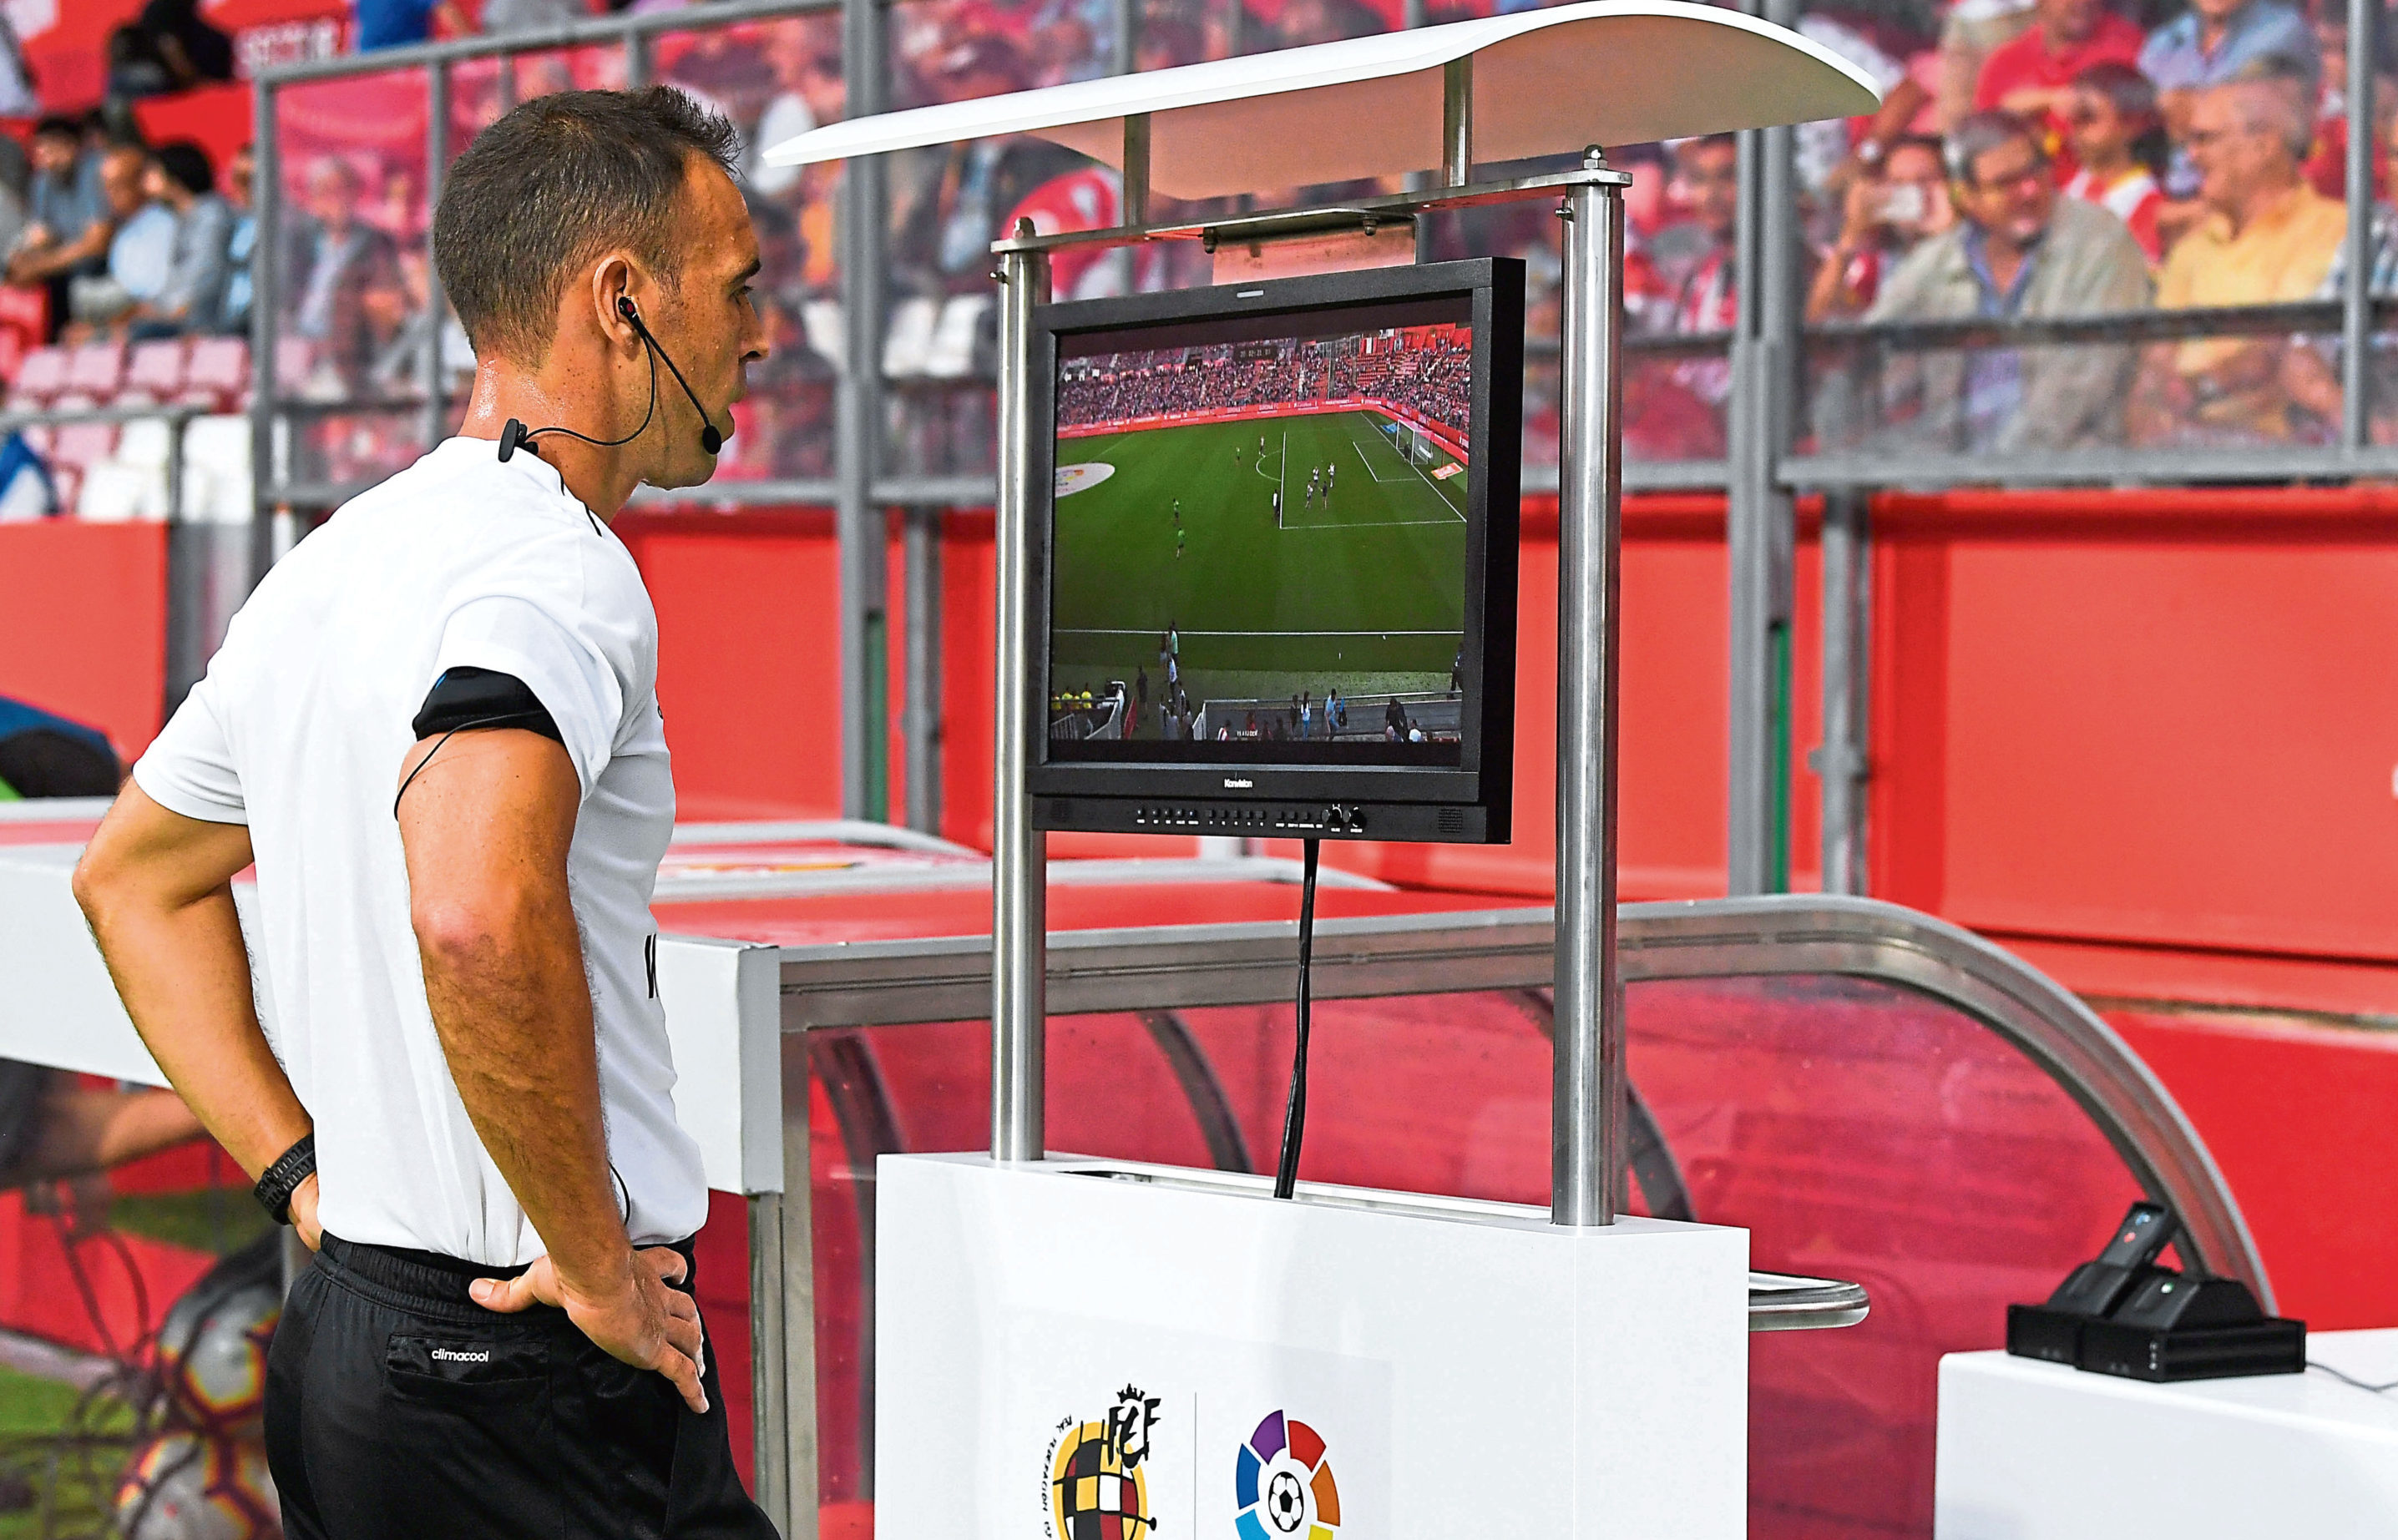 VAR has its merits but shouldn't be used in only selected games, says Alan